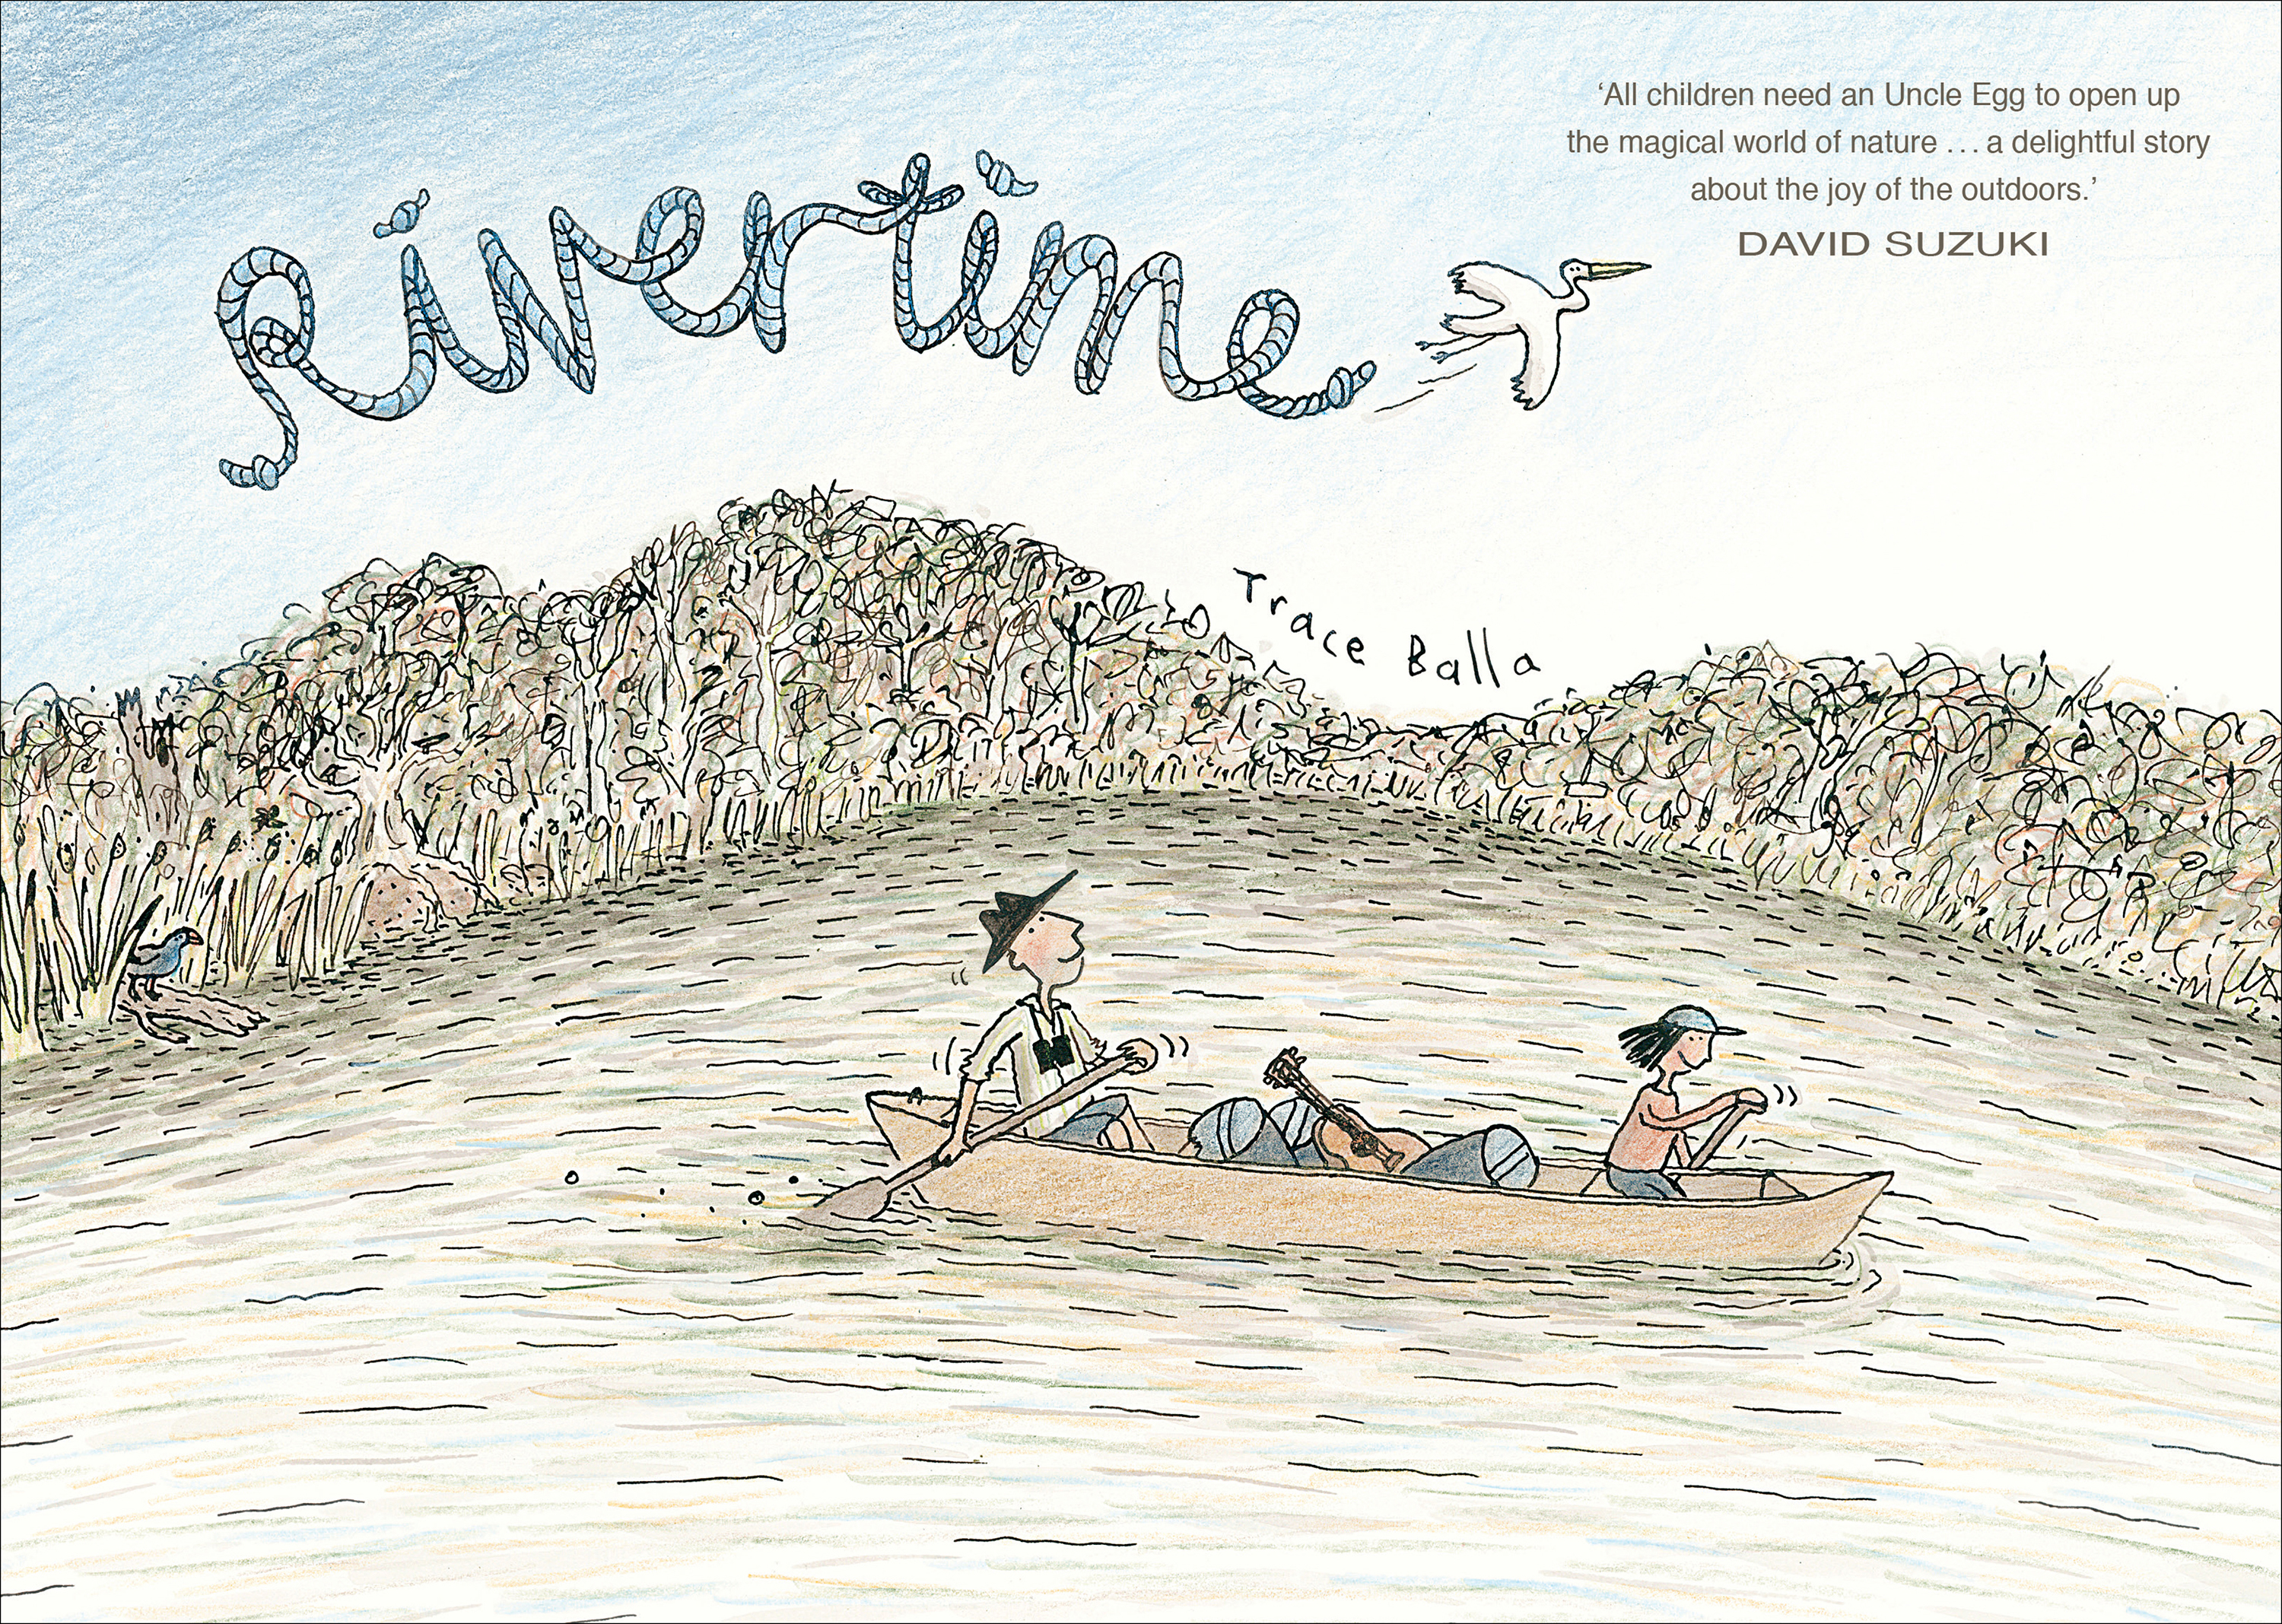 Rivertime by Trace Balla, ISBN: 9781743316337